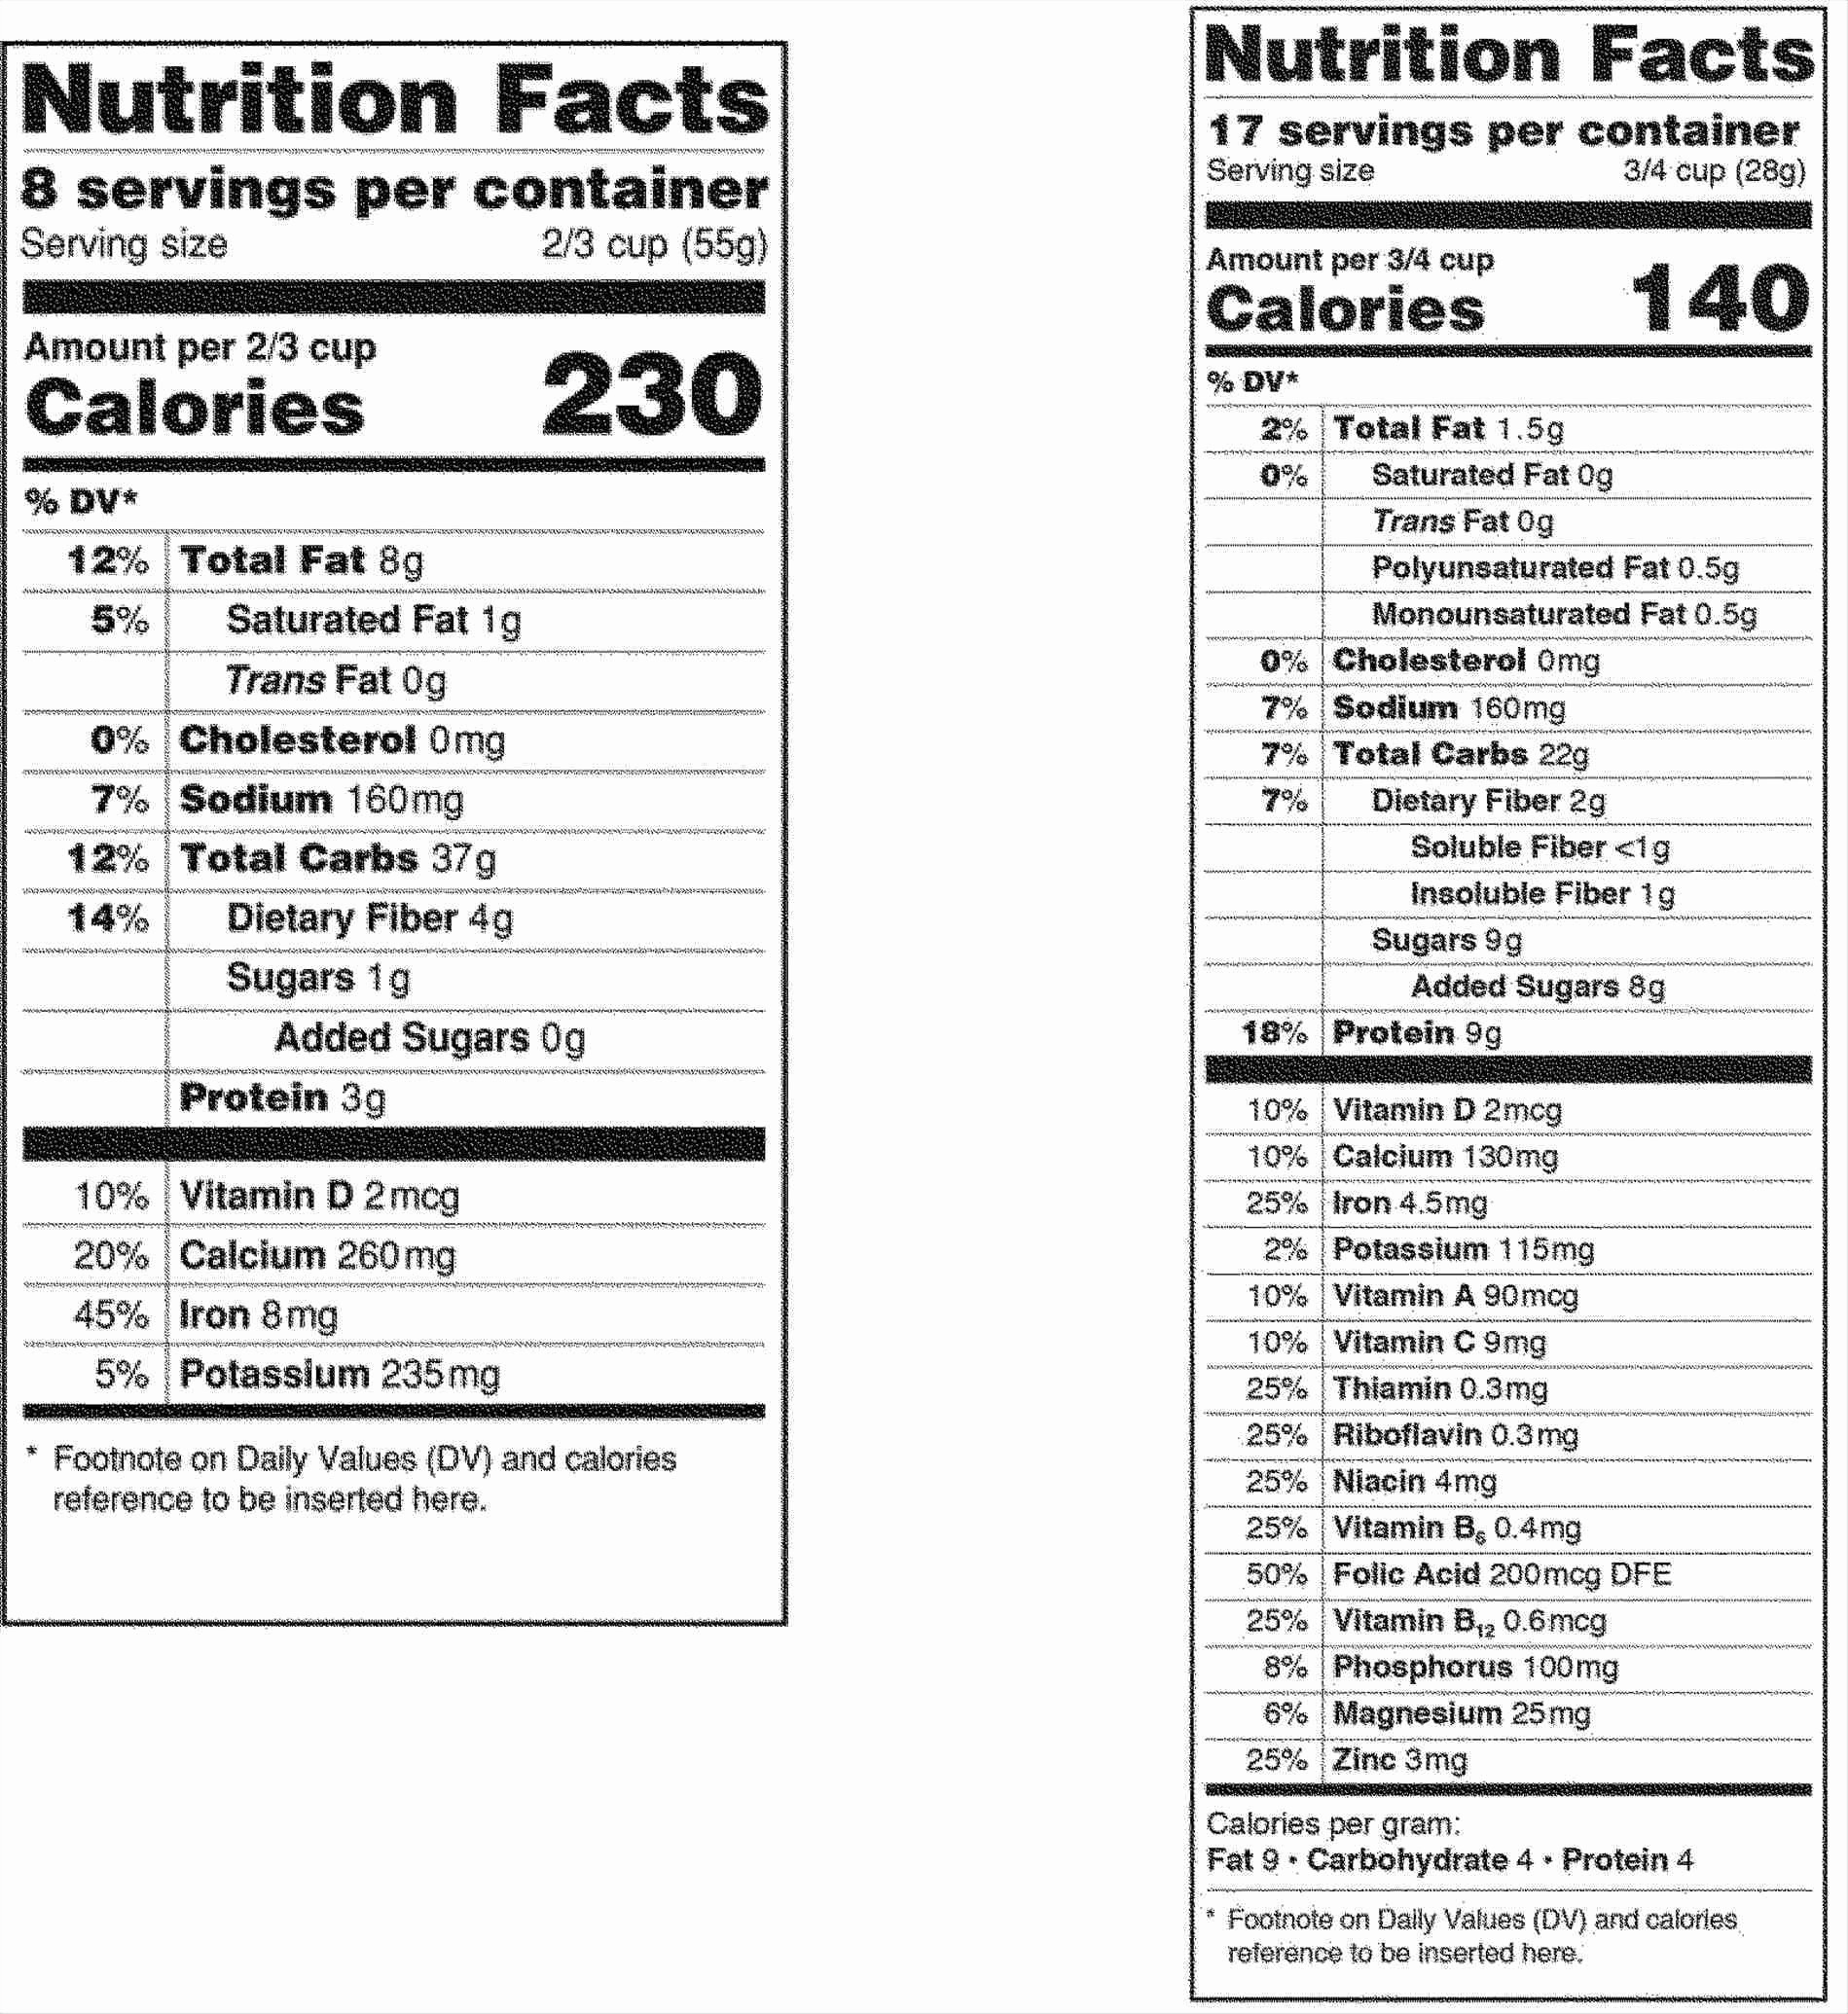 Nutrition Facts Label Template Excel Lovely Nutrition Label Template Blank